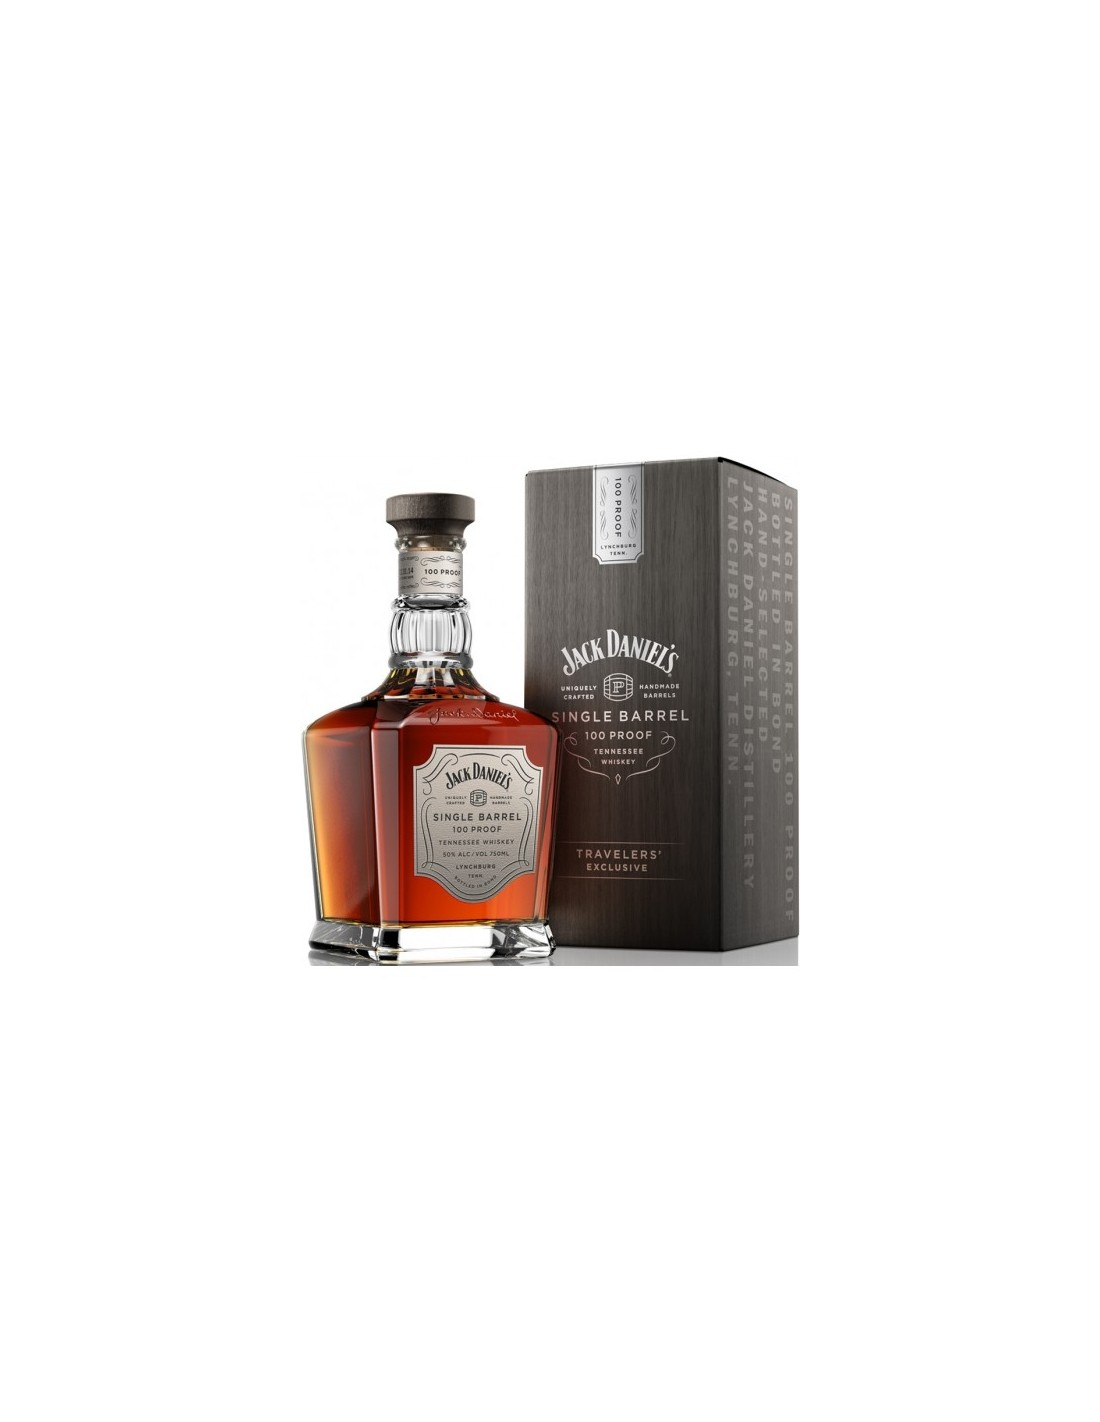 Whisky Bourbon Jack Daniel's Single Barrel 100 Proof, 50% alc., 0.7L, America